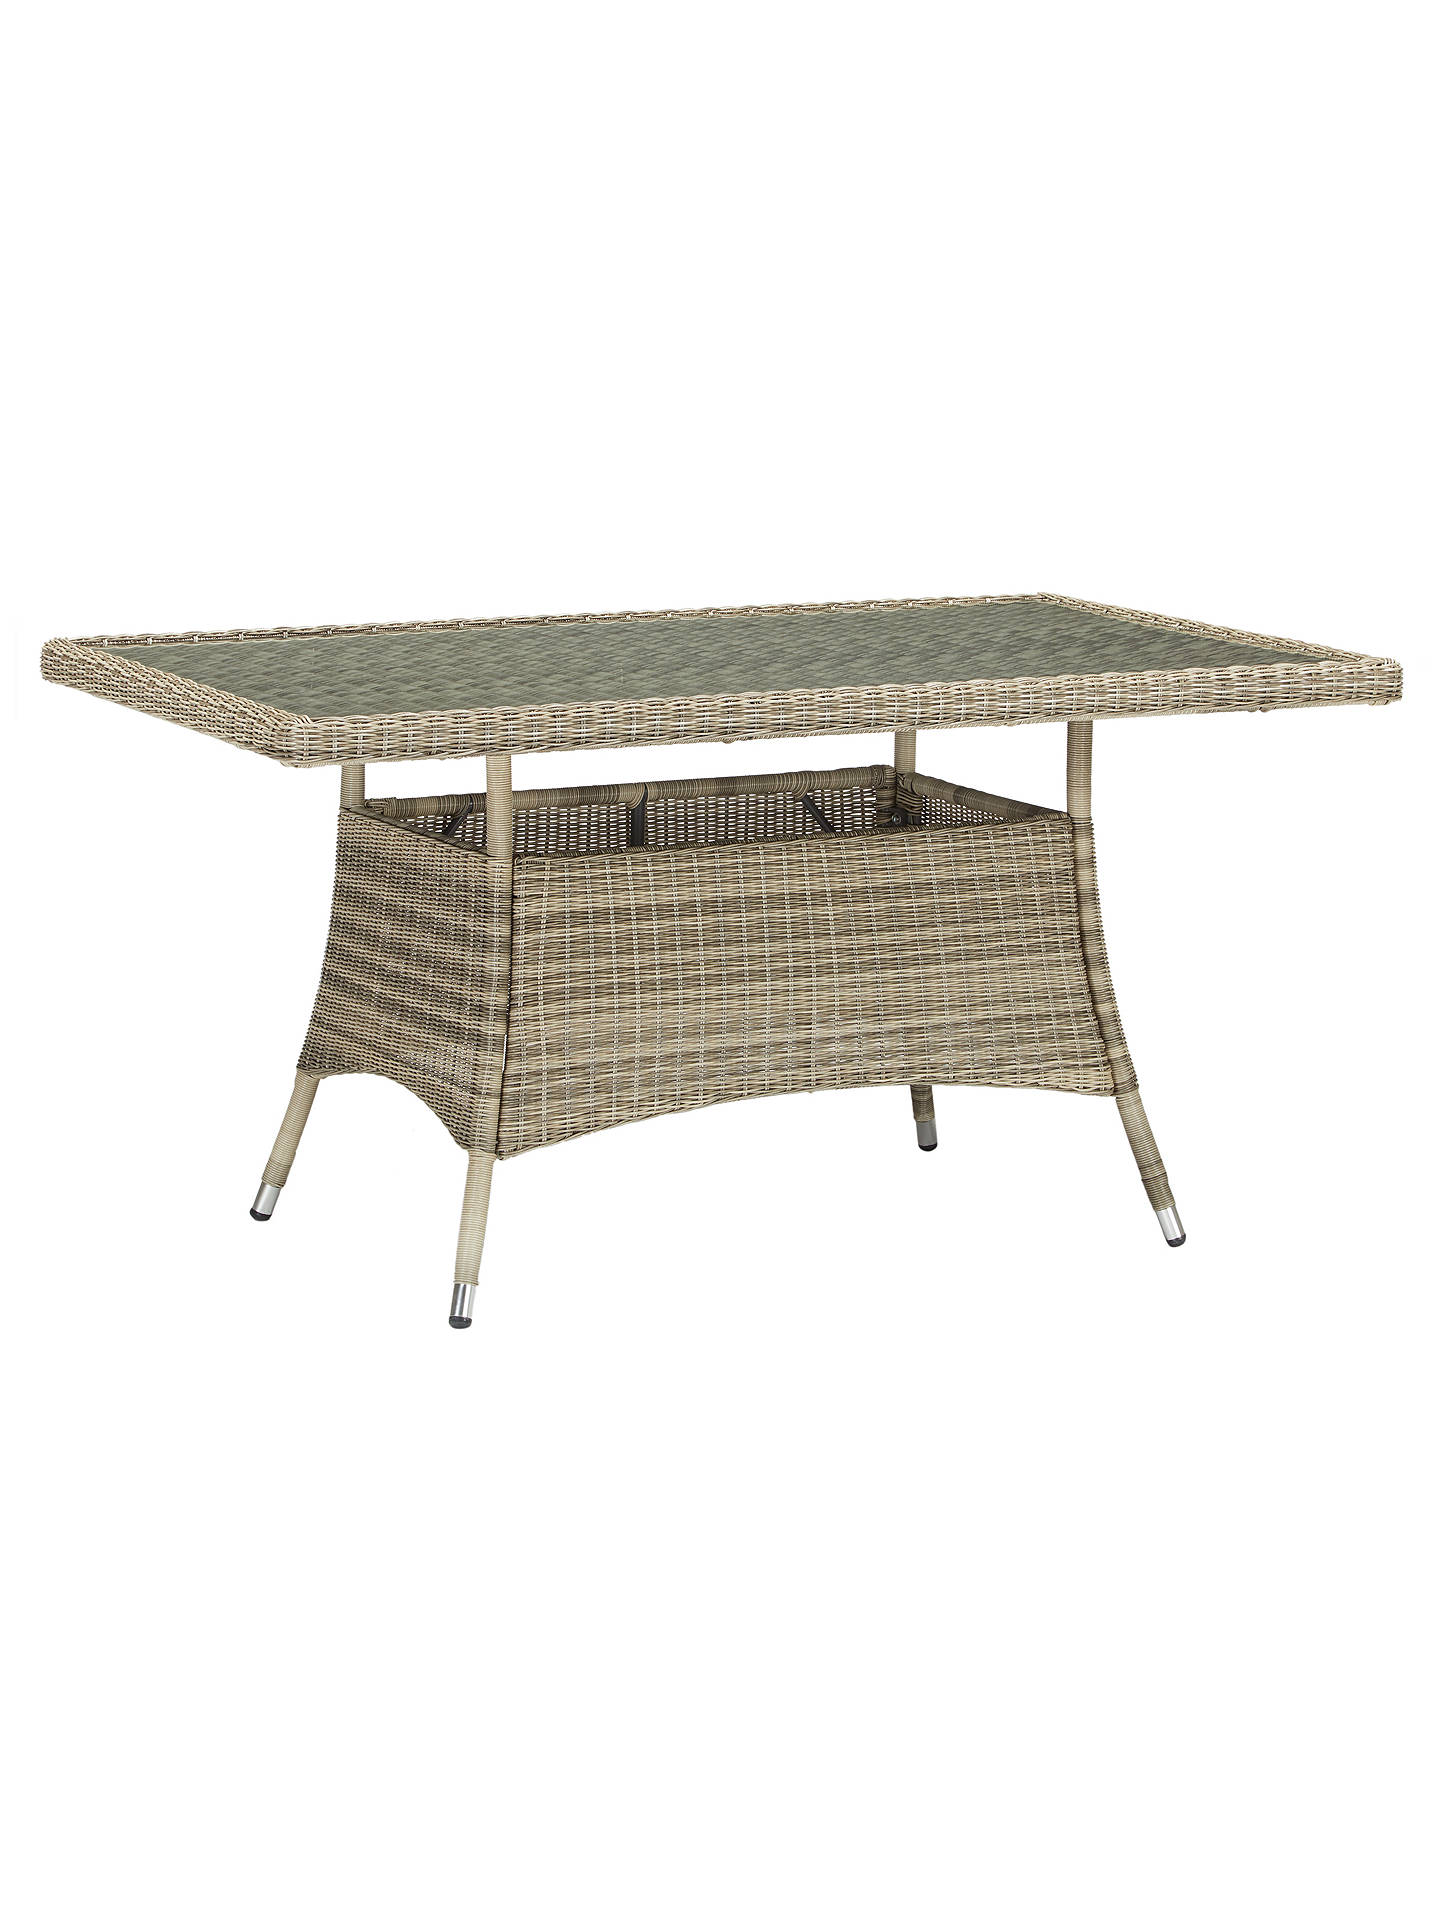 Buy John Lewis & Partners Dante 6 Seater Rectangular Garden Dining Table with 6 Chairs, Natural Online at johnlewis.com